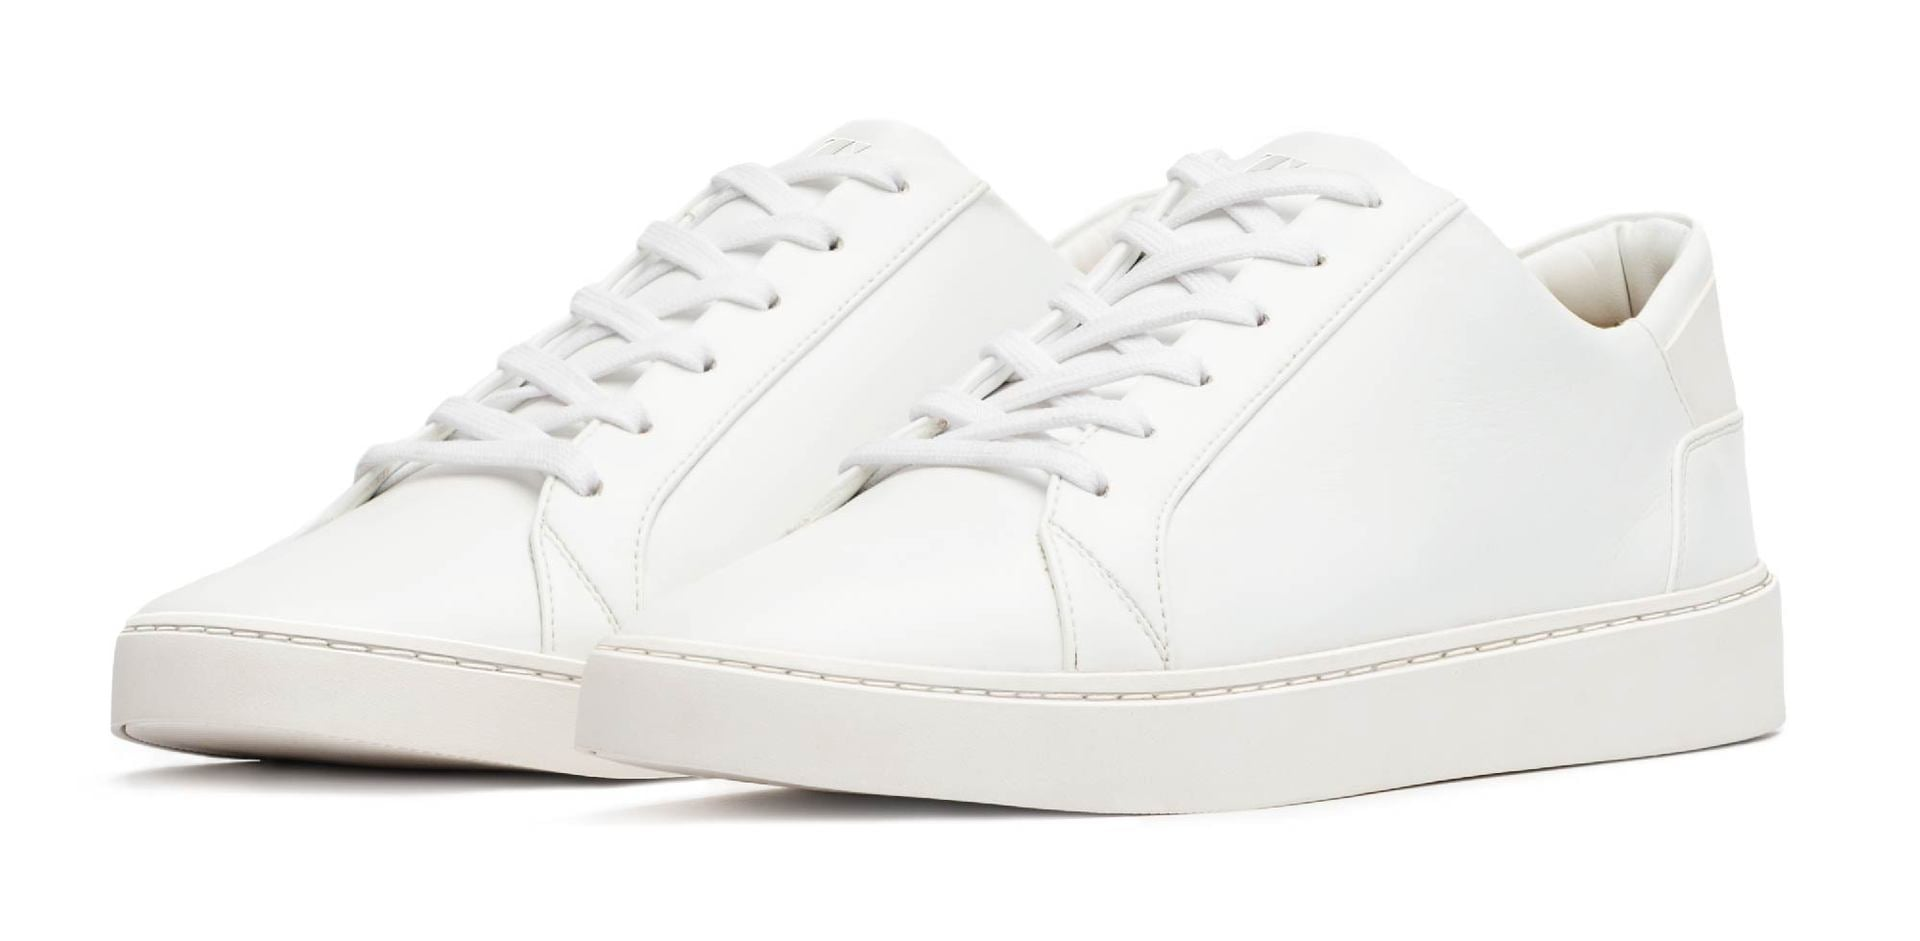 Thousand Fell Women's Lace Up Sneakers